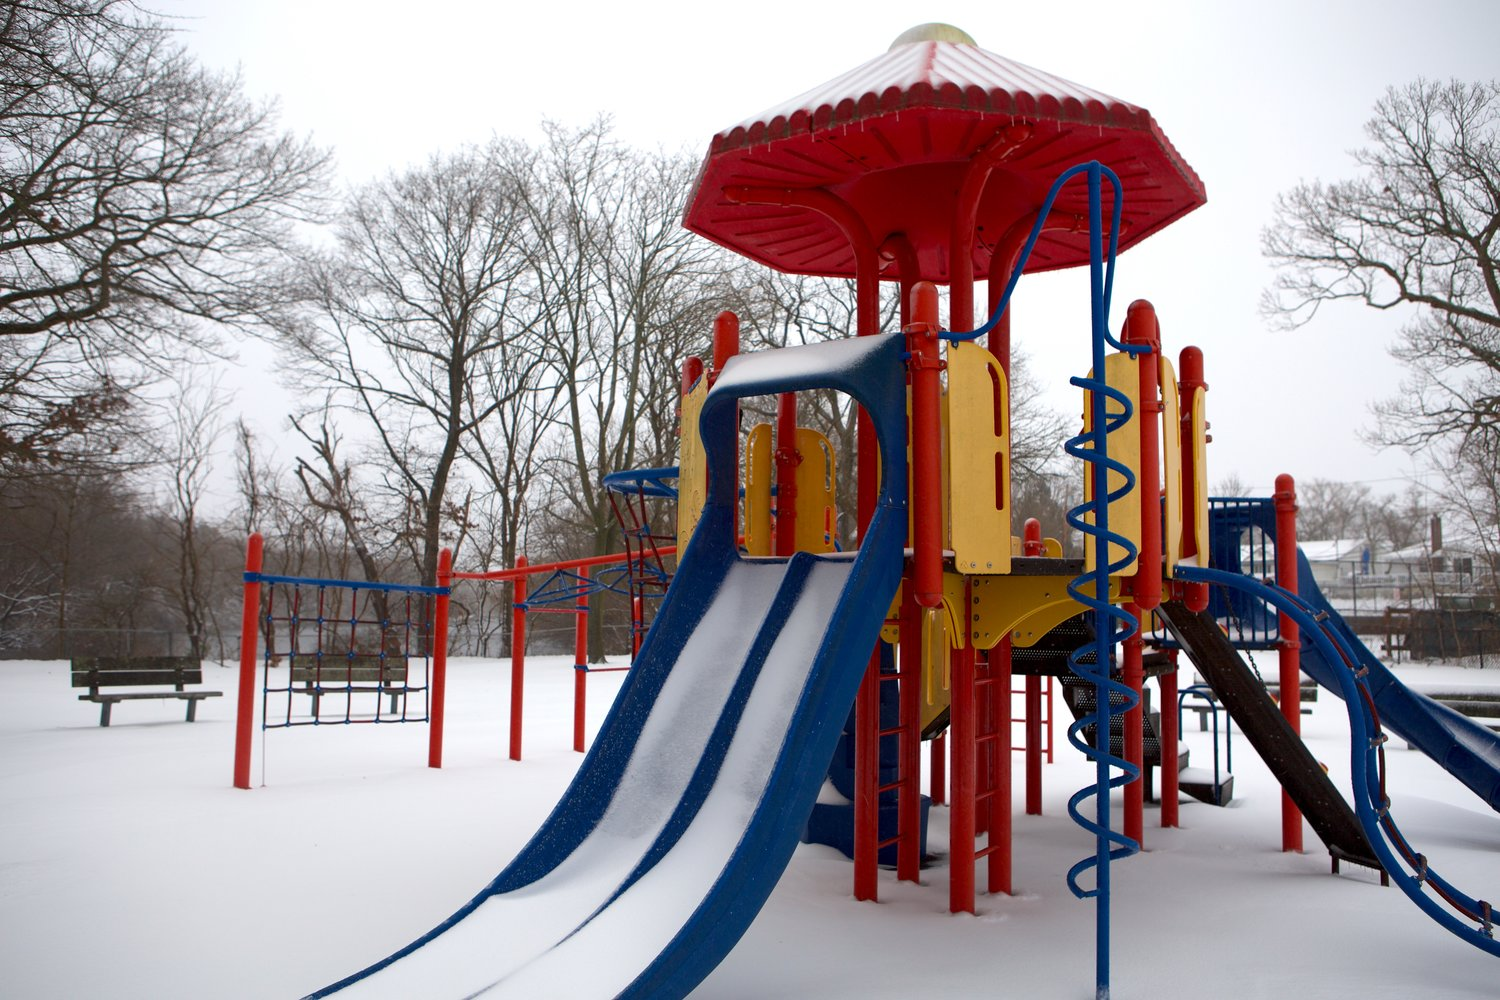 The playground at Forest City Park in Wantagh accumulated a layer of snow covering the equipment.